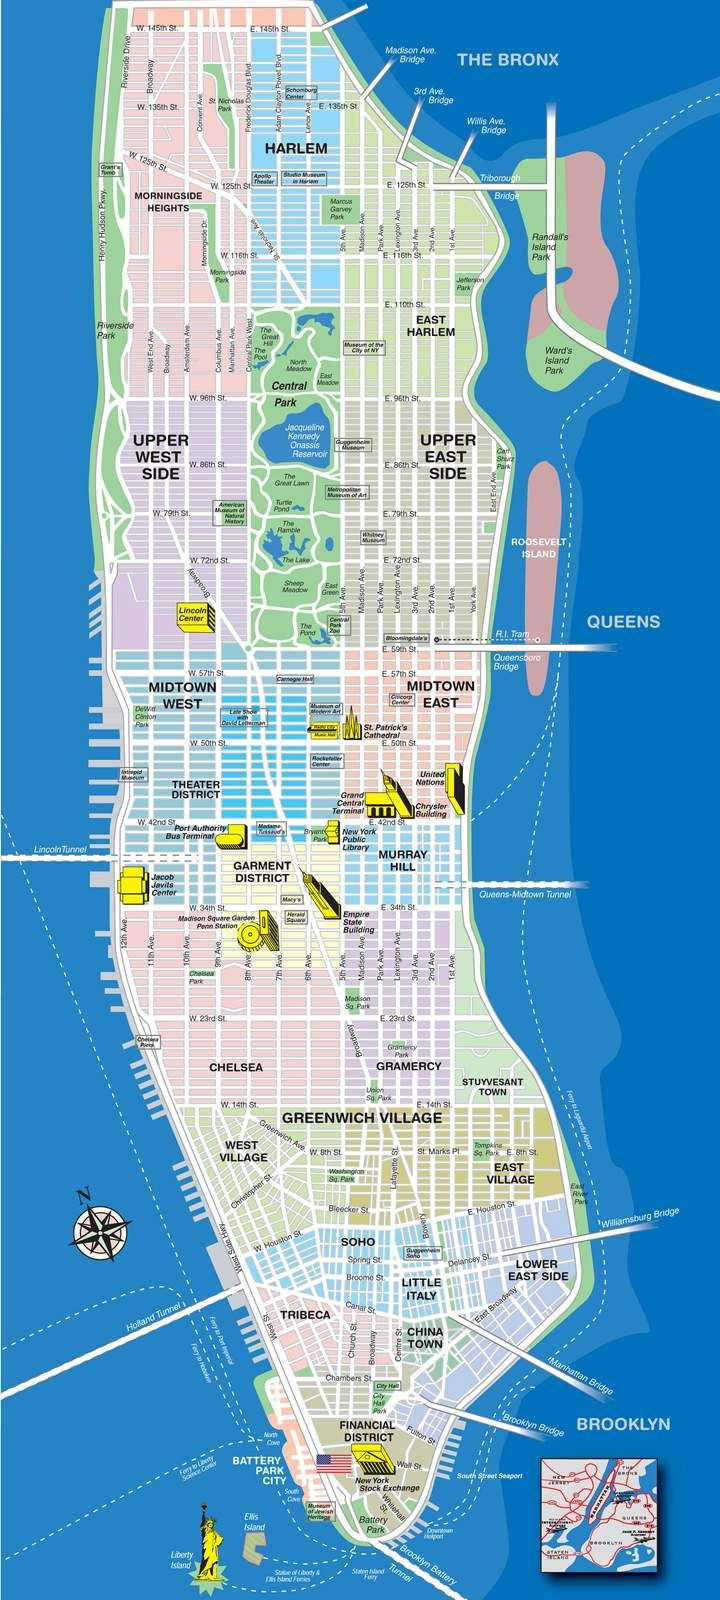 Printable 8x11 Map Of The United States Inspirational High Resolution Map Of Manhattan For Print Or